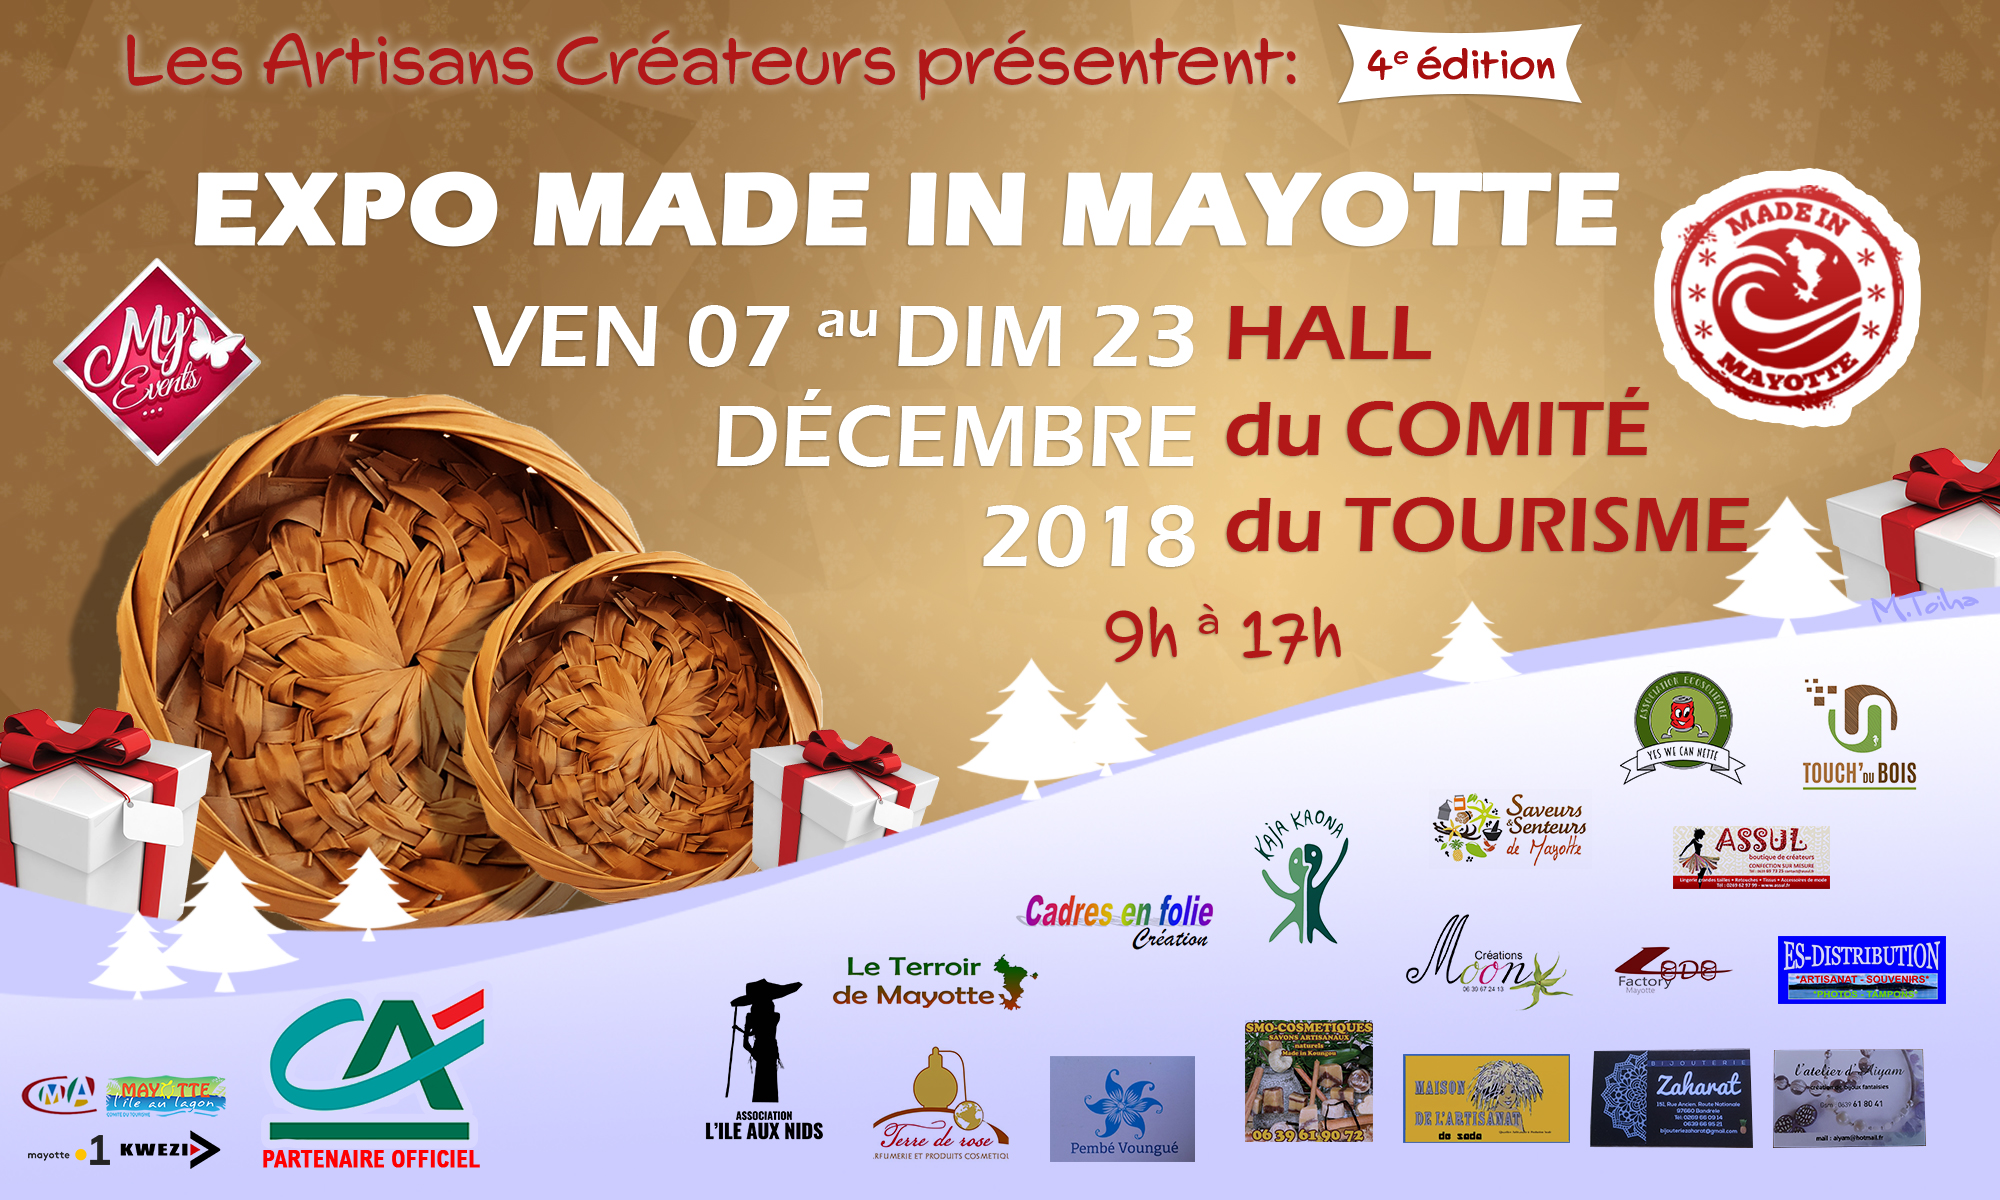 Expo Made In Mayotte: Edition 4 - Tourisme Mayotte